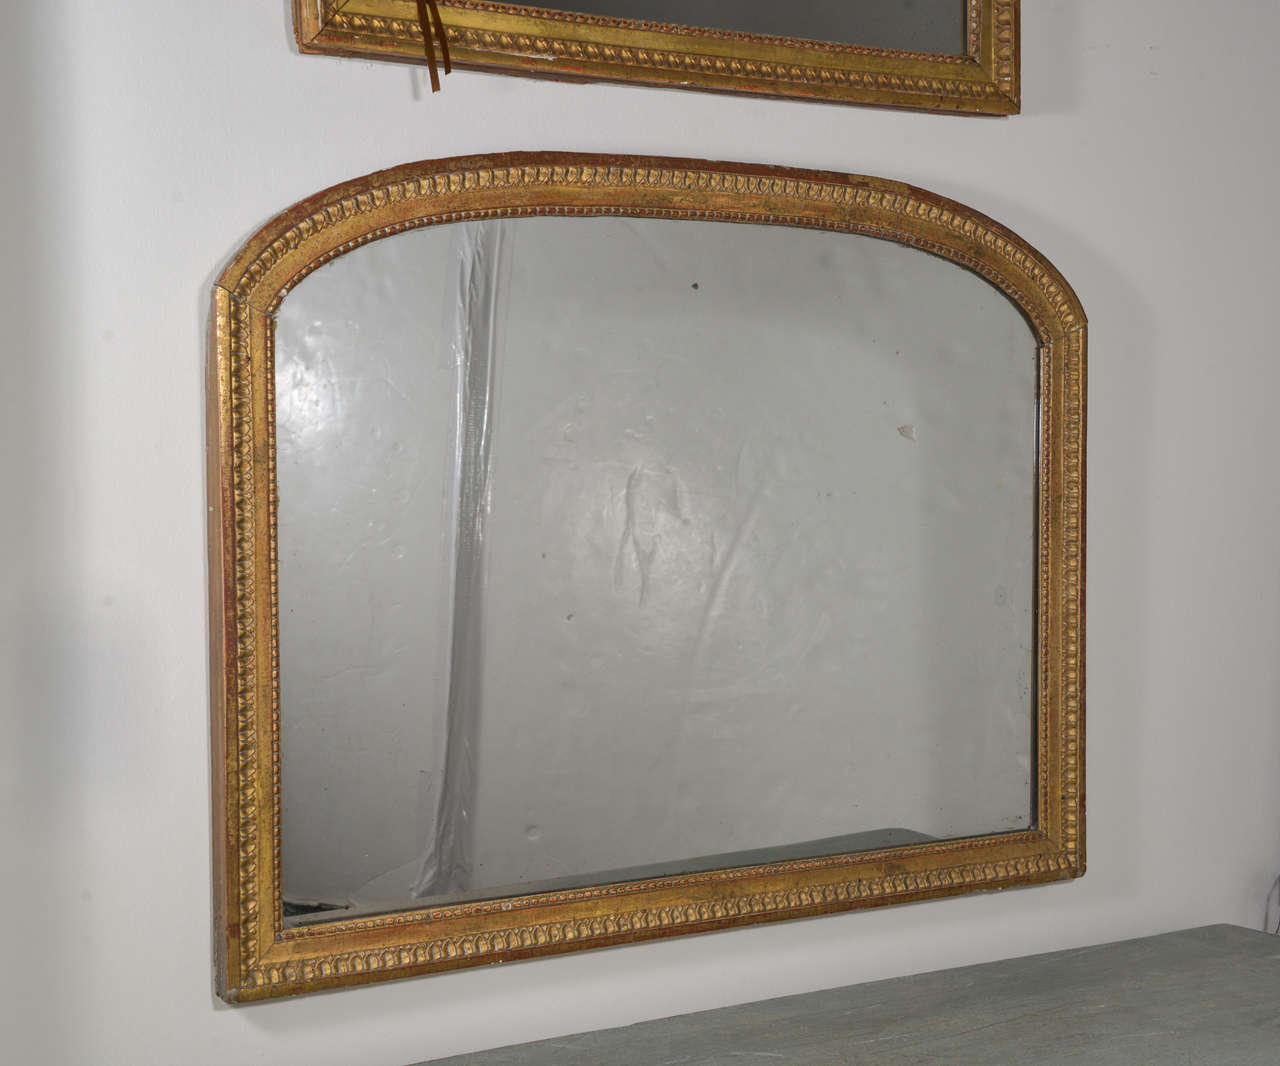 Unique Shaped Mirror Louis Xvi Period Mirror For Sale At 1stdibs